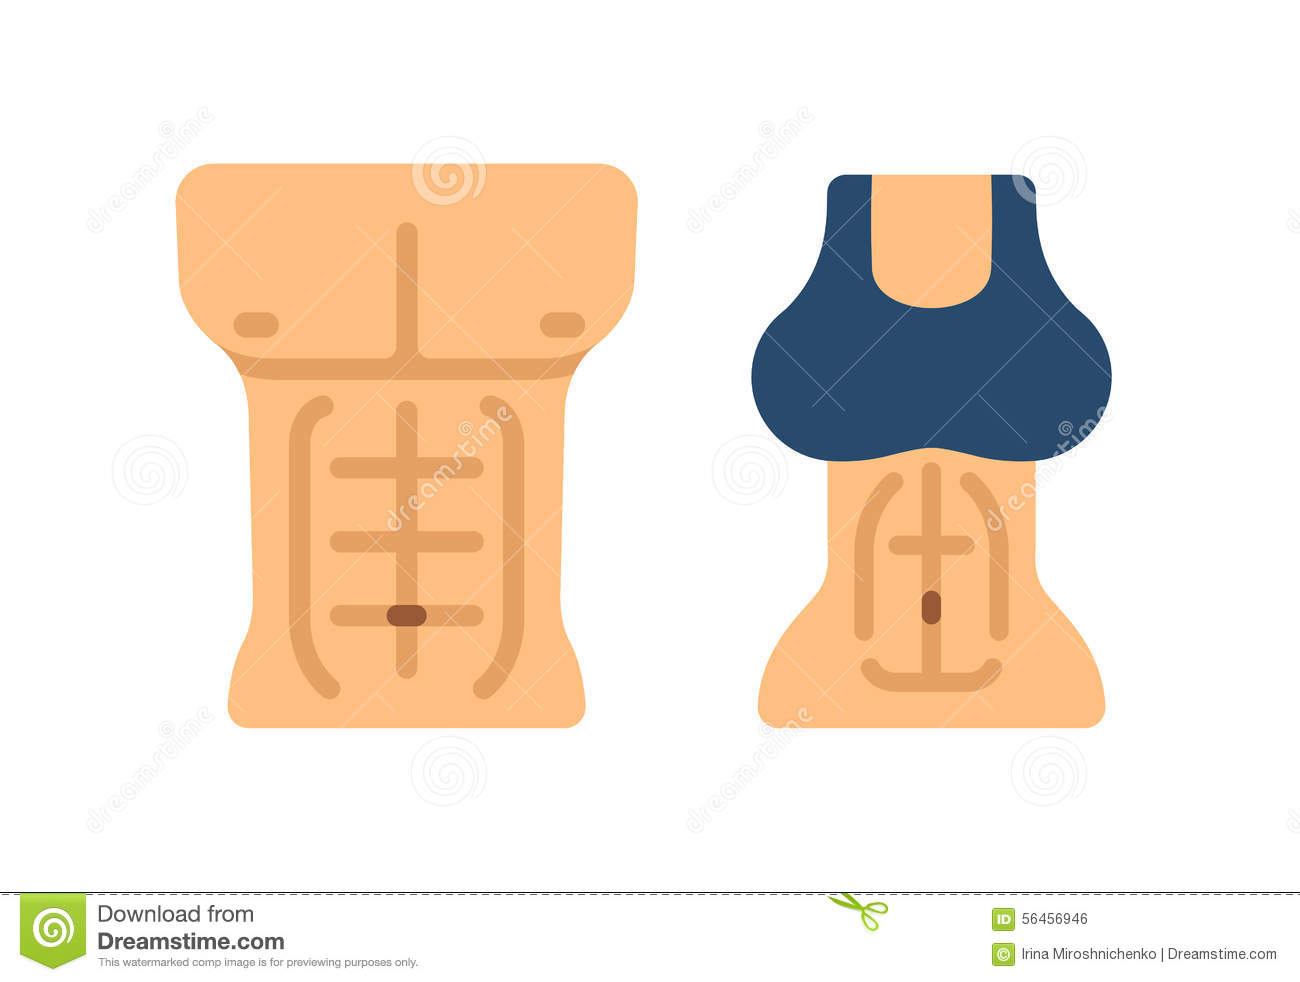 Abs Clipart Group with 18+ items.